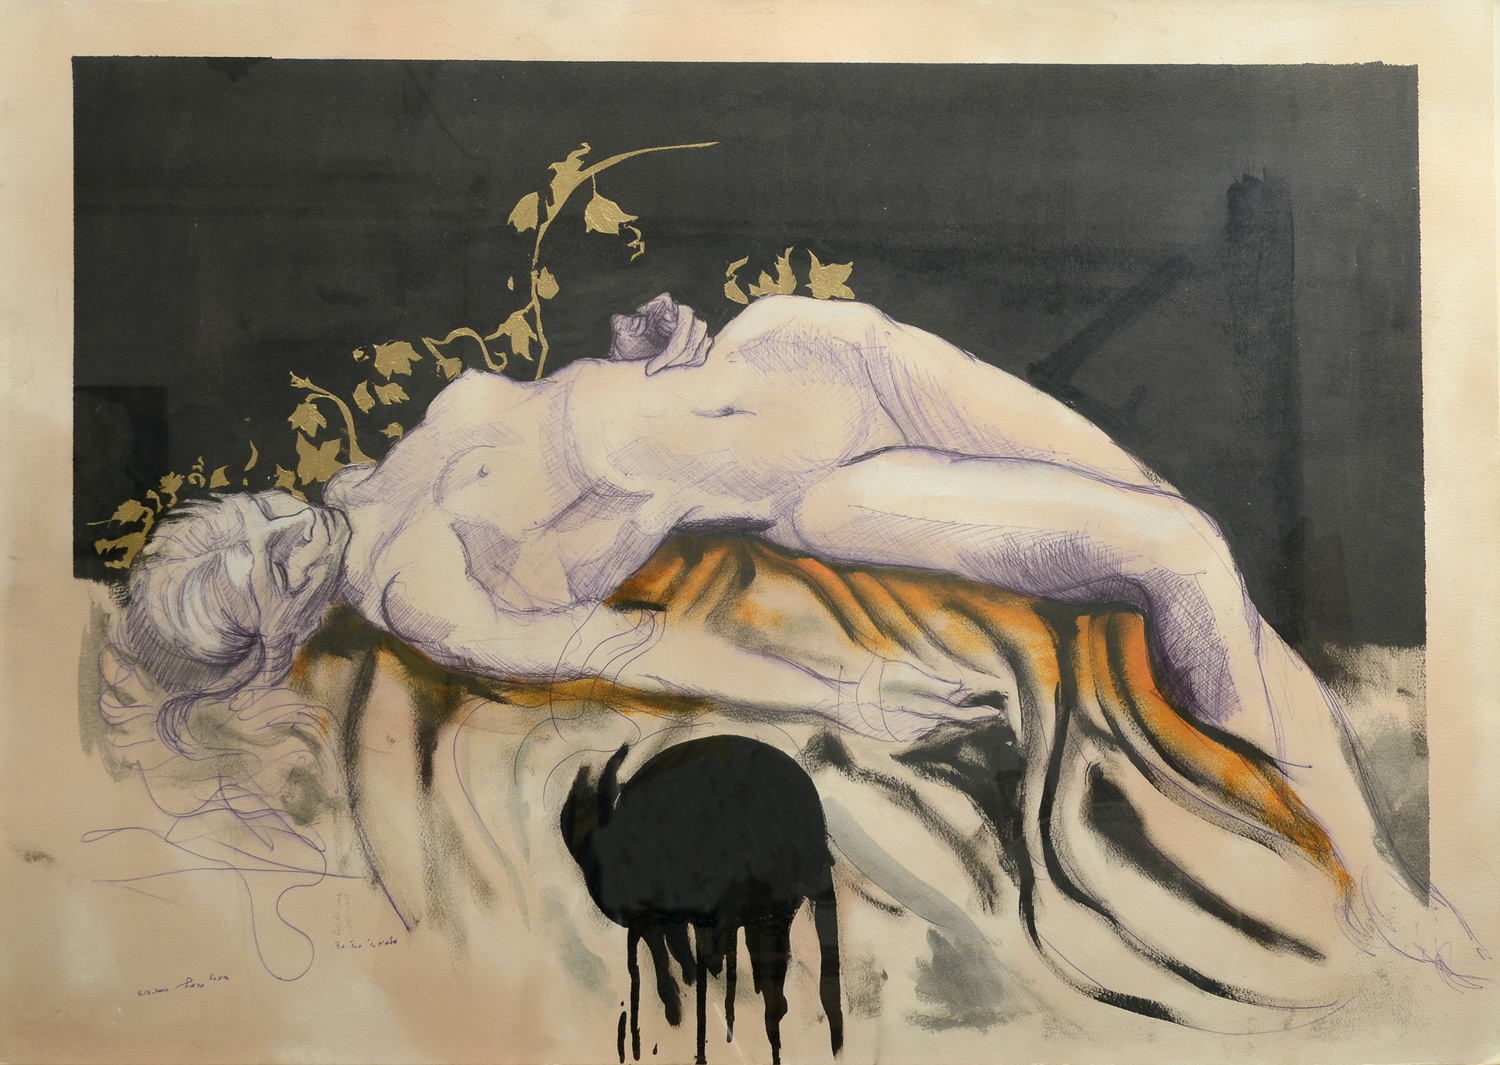 Jezebel, Mixed media on paper, 110x80 cm, 2012